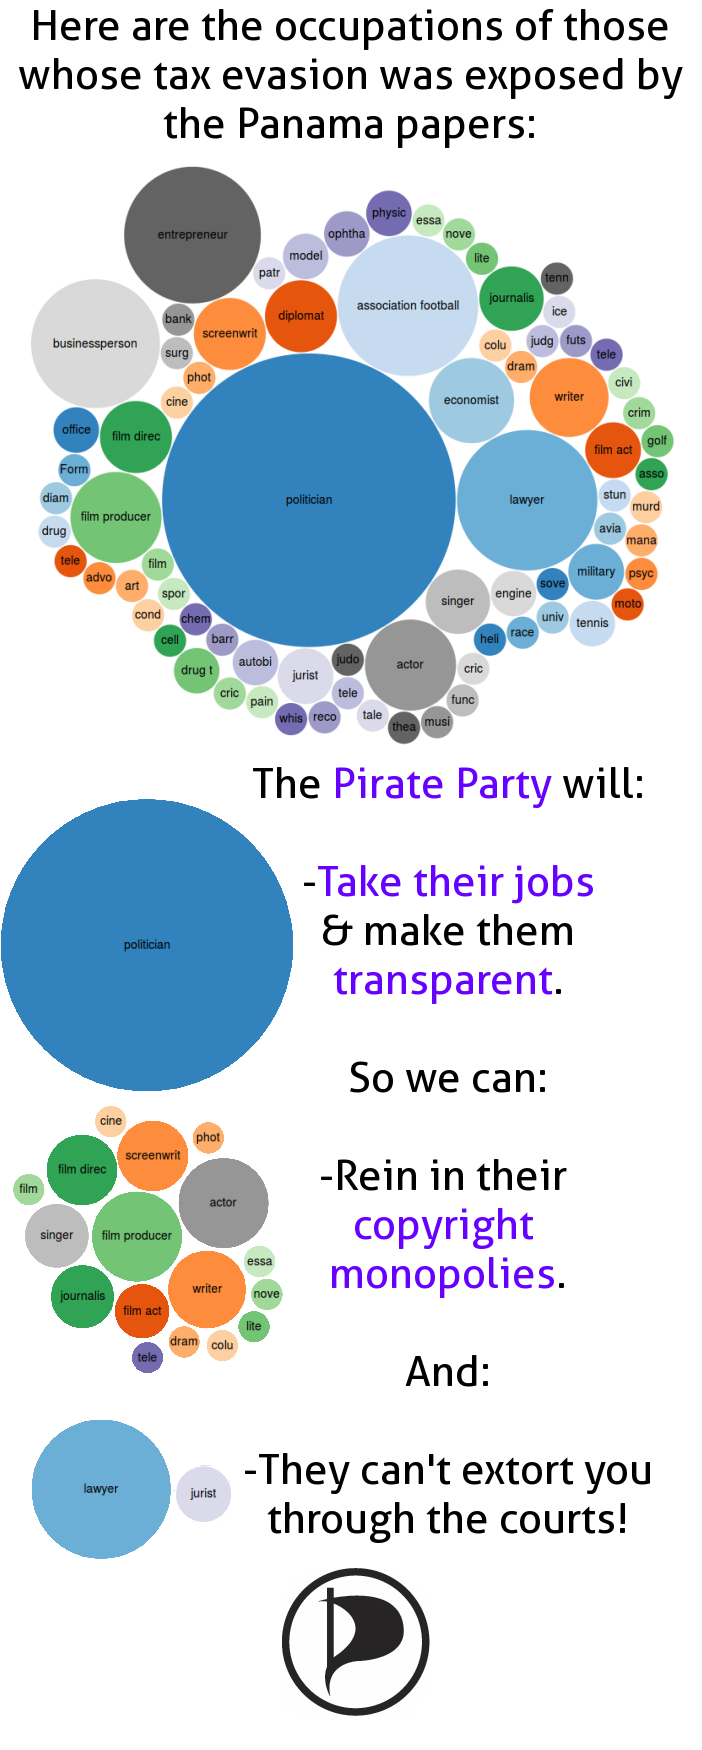 Pirate Party Panama Papers infographic